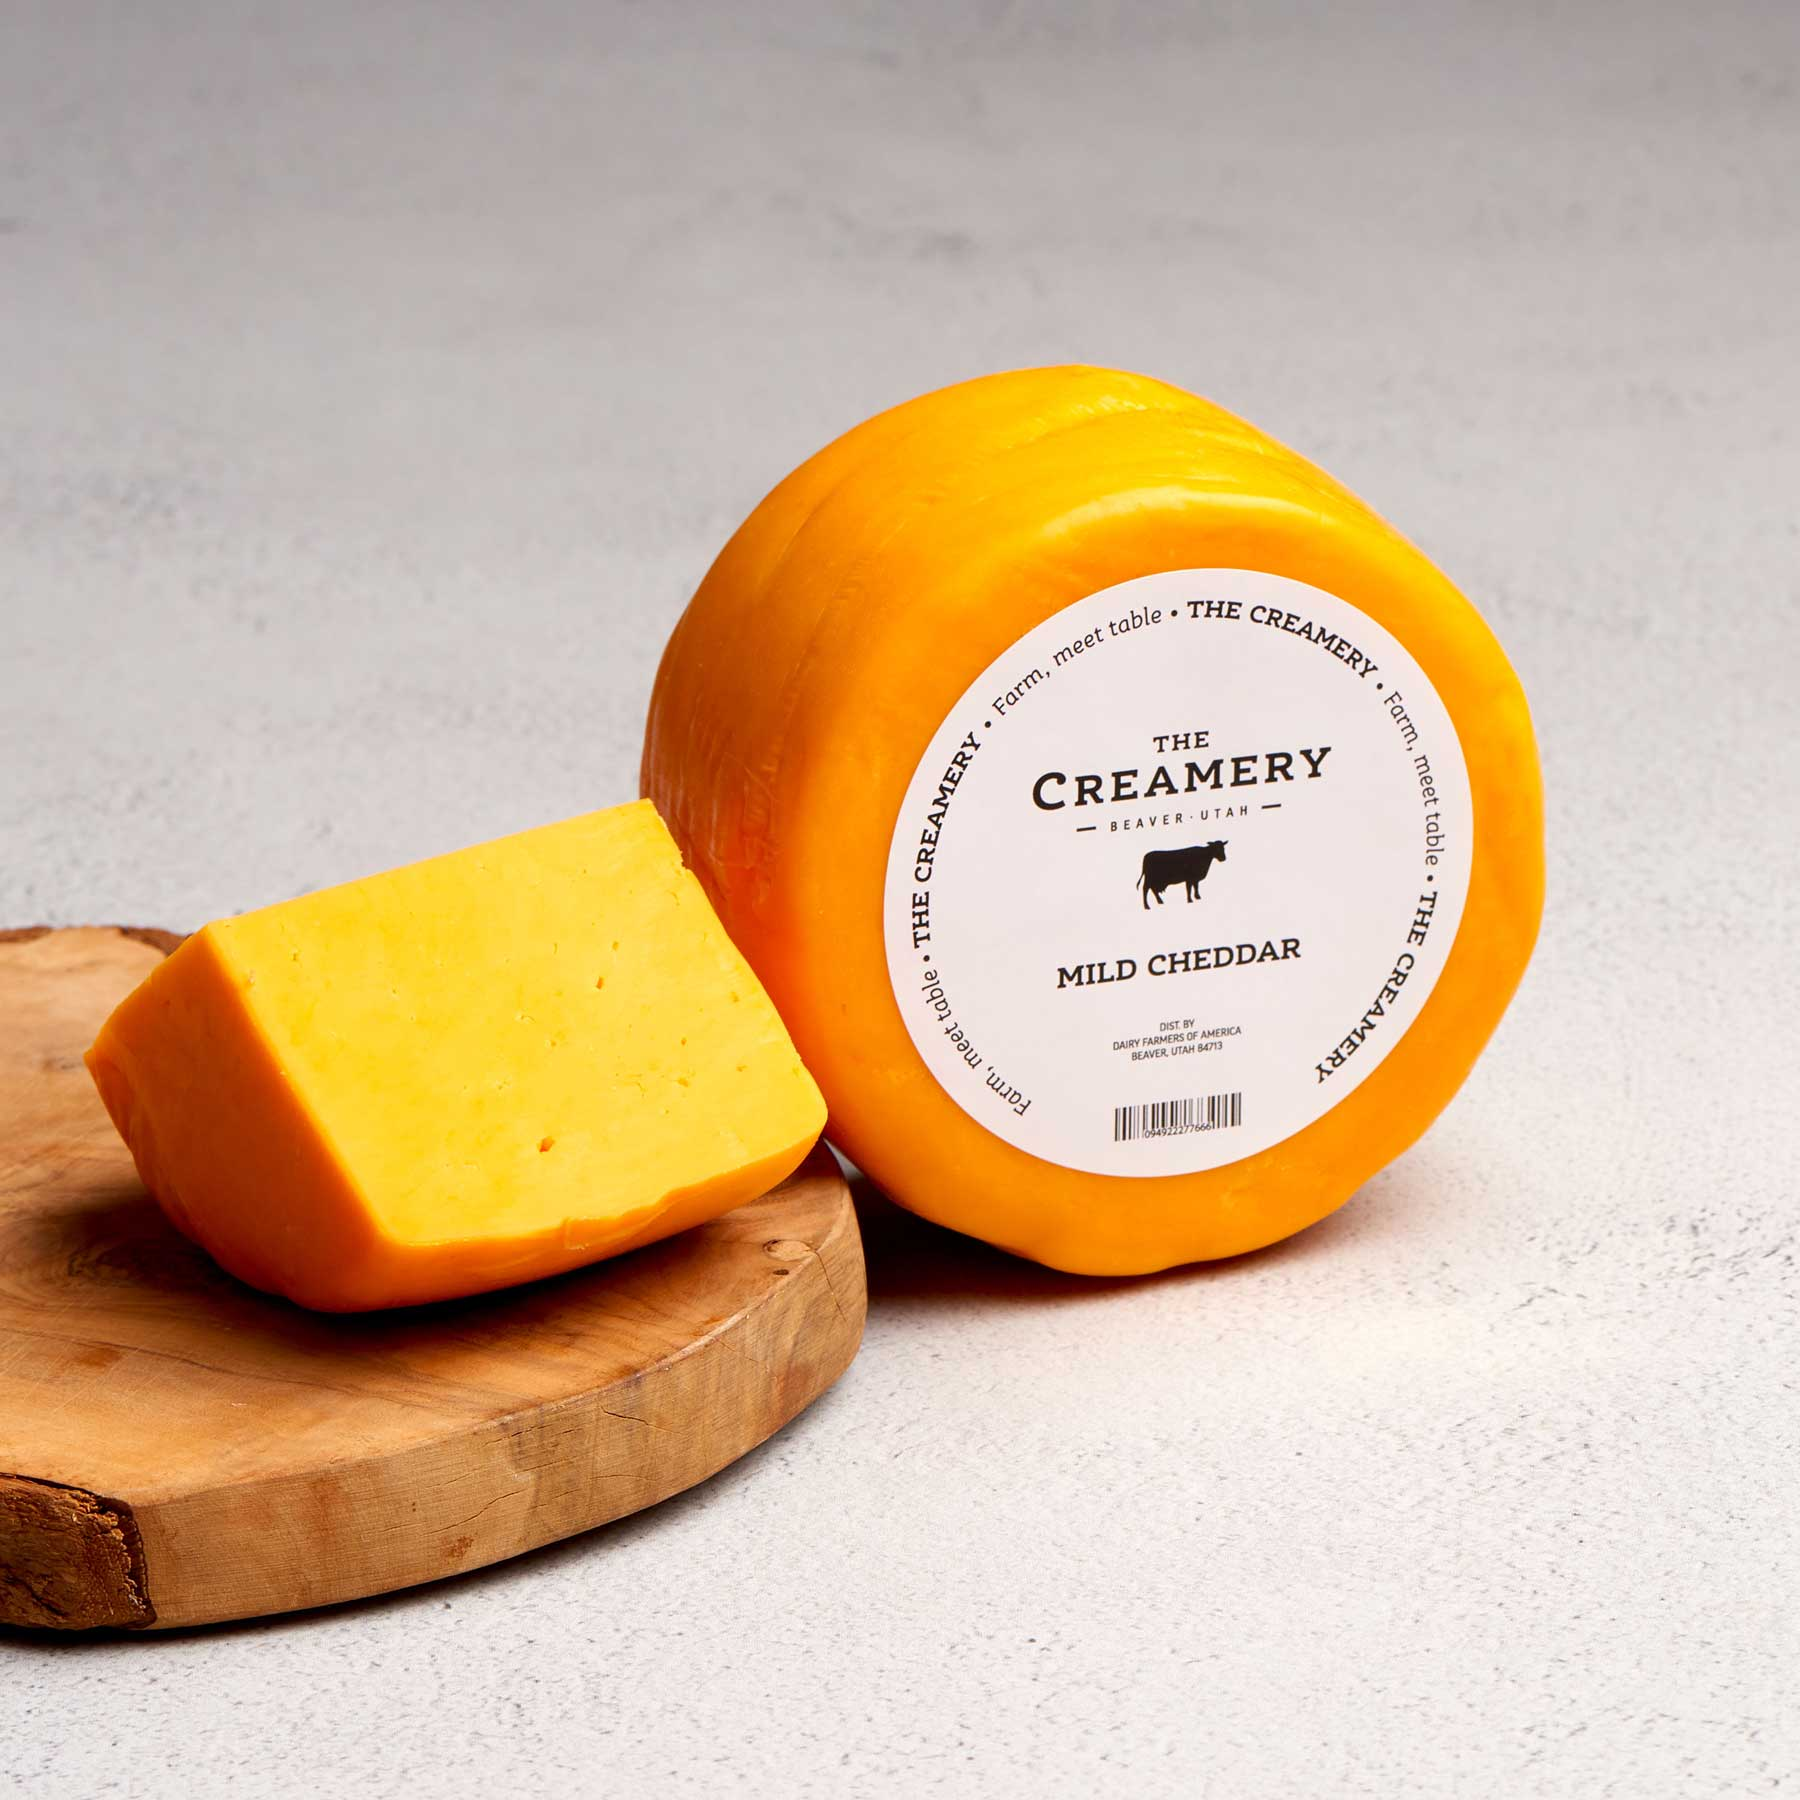 Image of Mild Cheddar Cheese 1 pound round